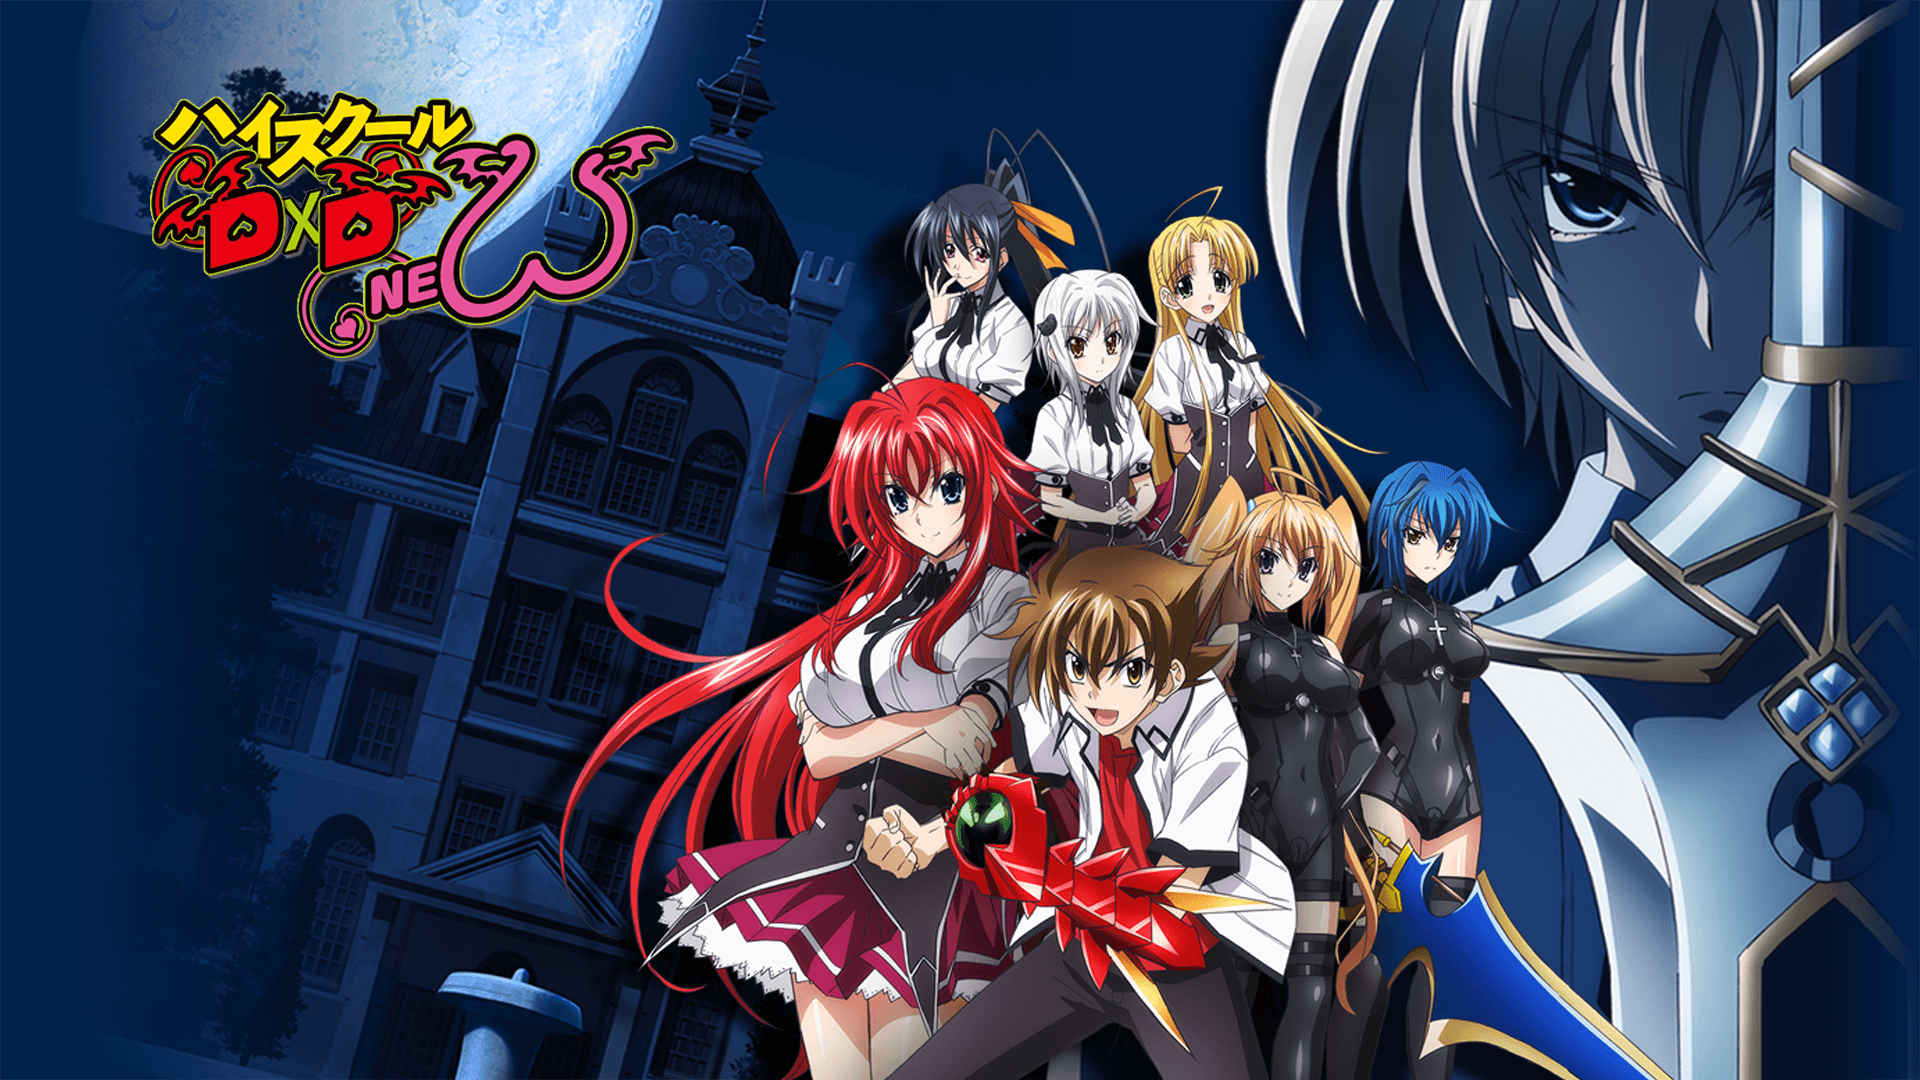 High School DxD Wallpapers - Wallpaper Cave